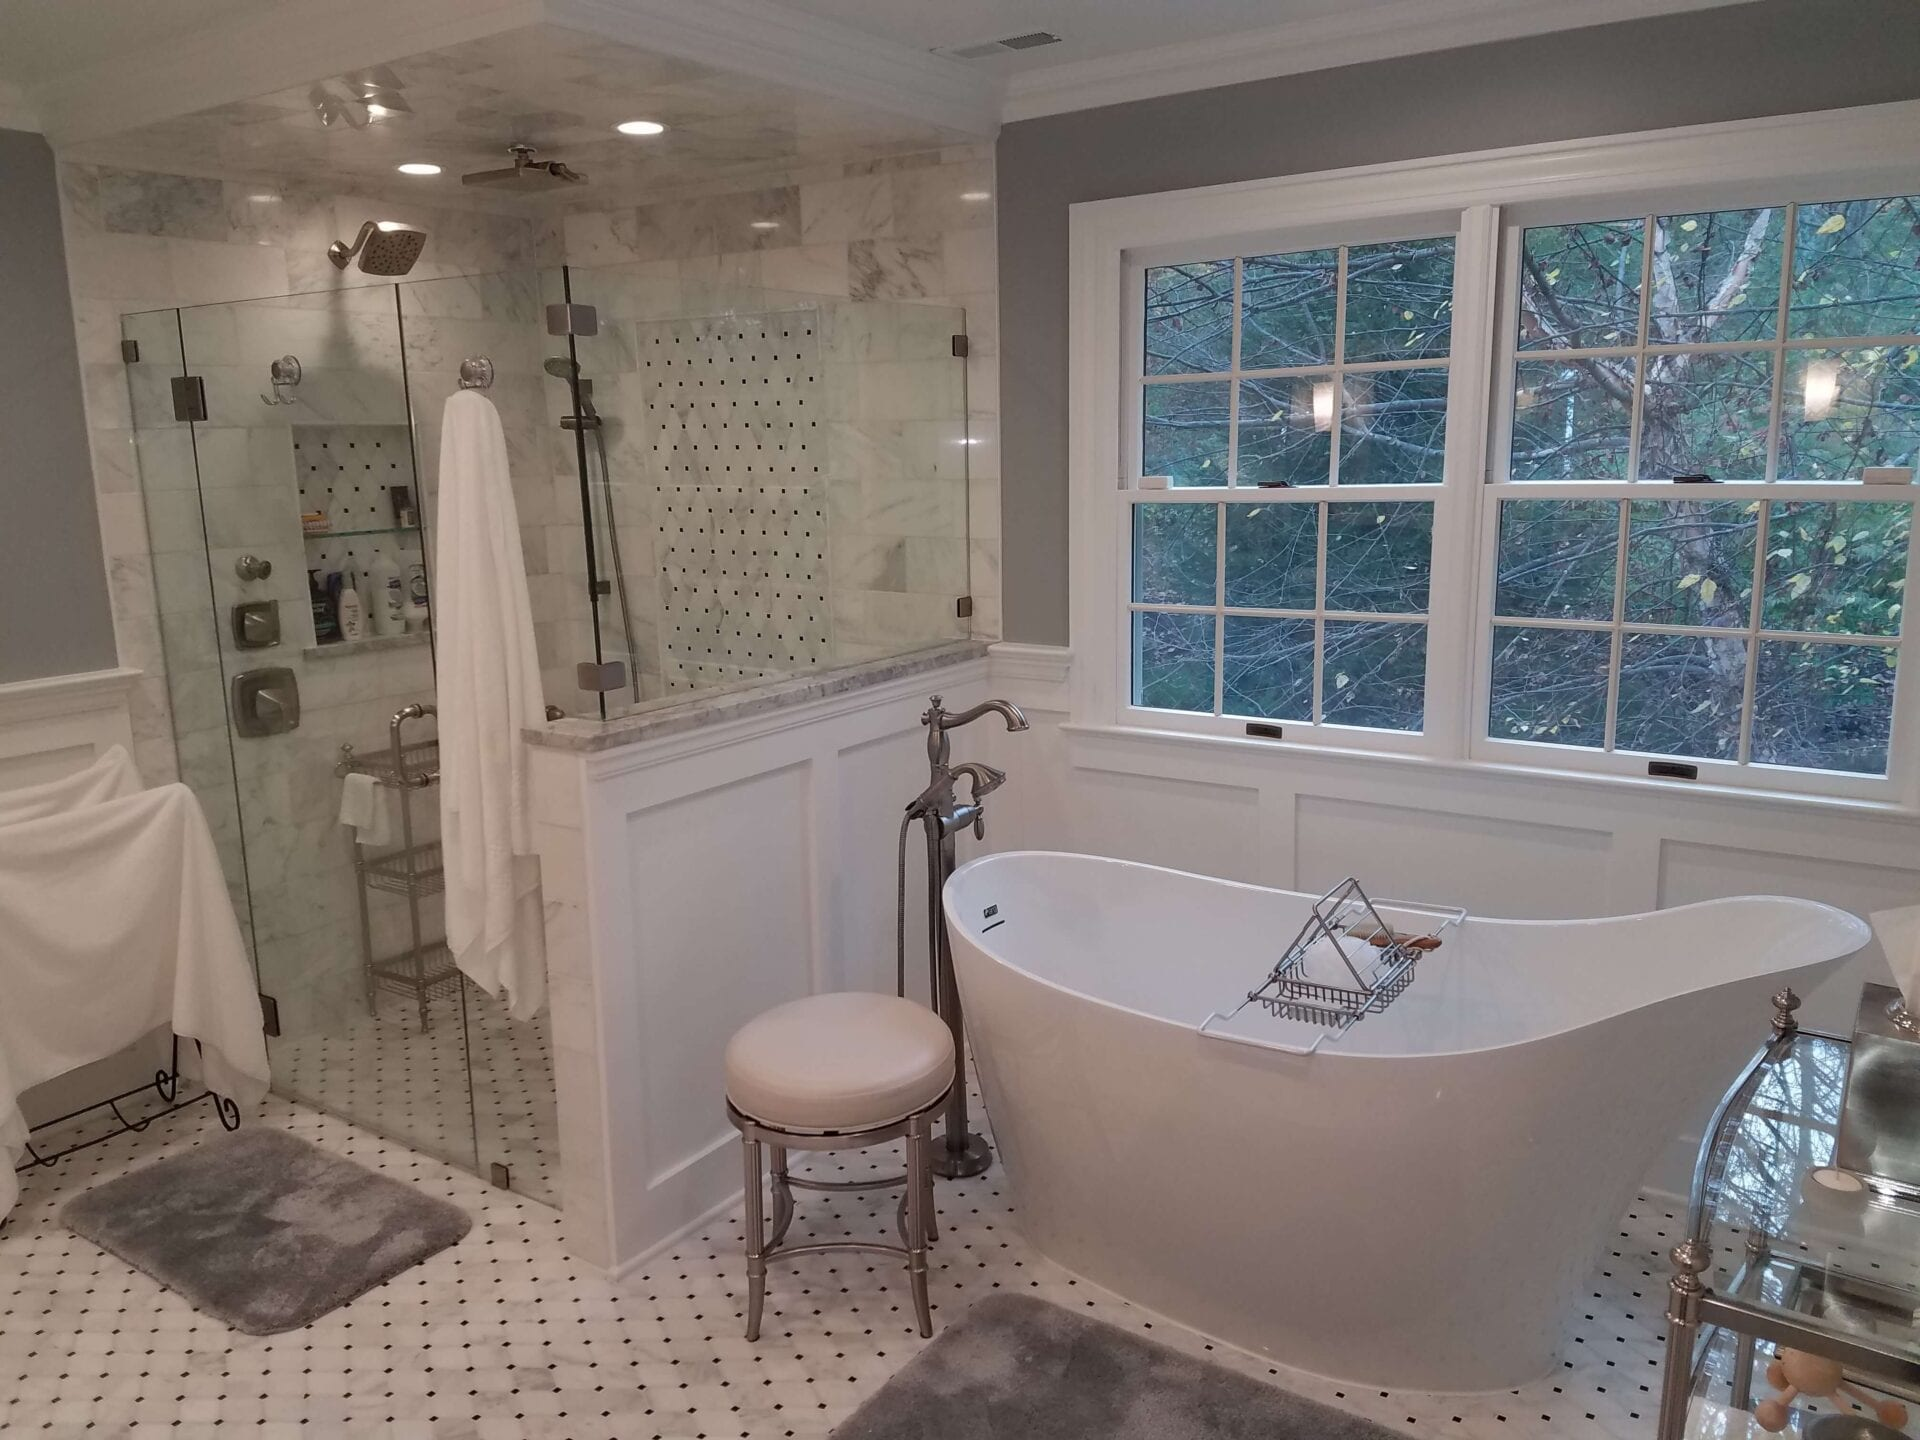 Functional Bathroom Design Ideas for Any Home - All Trades ...